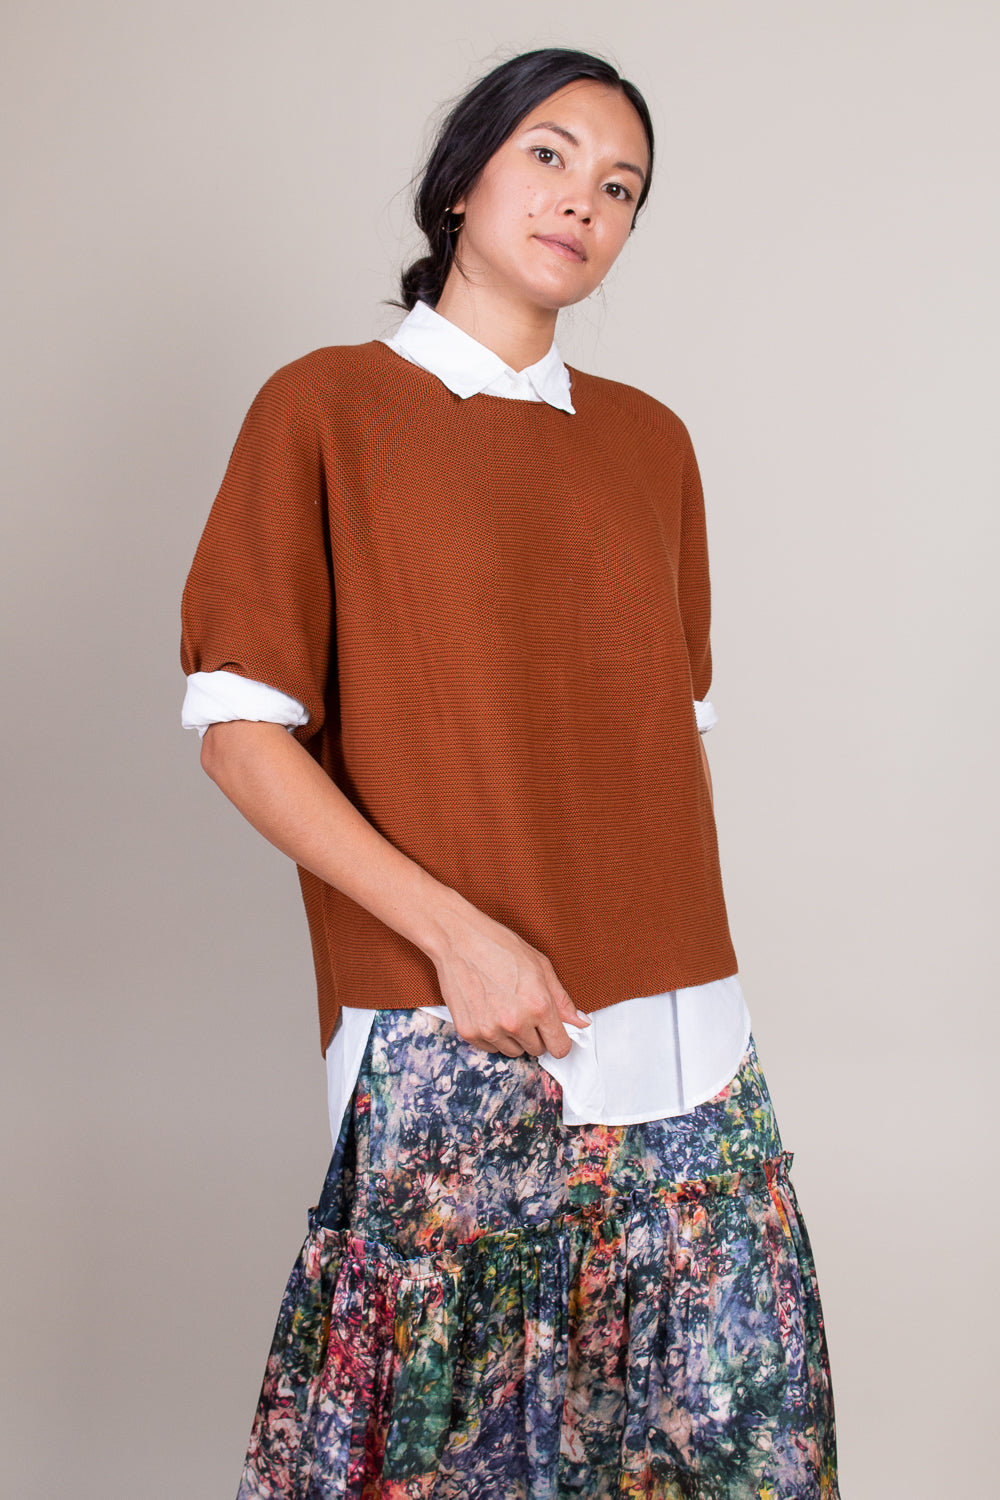 Koda Blouse in Chestnut